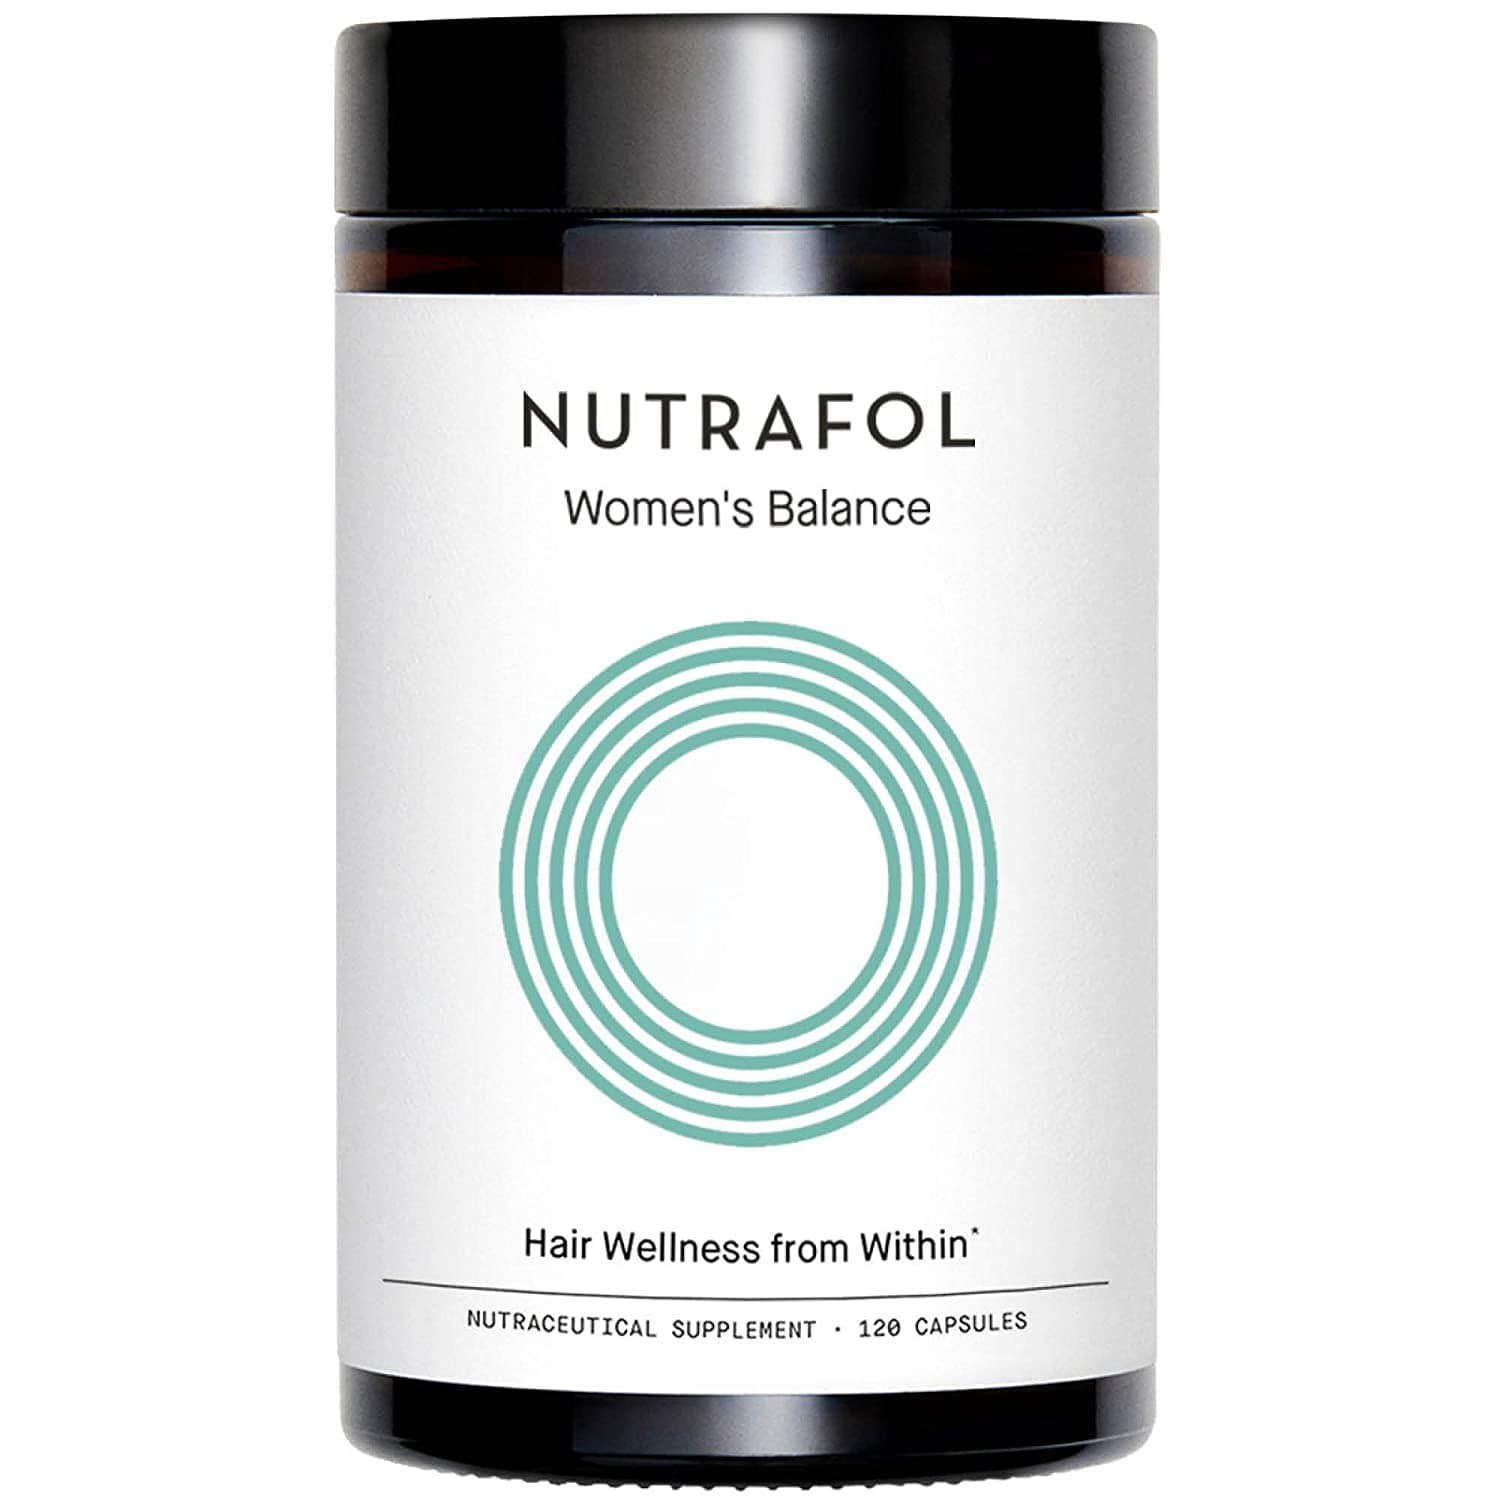 image descriptionNutrafol- Women's Balance